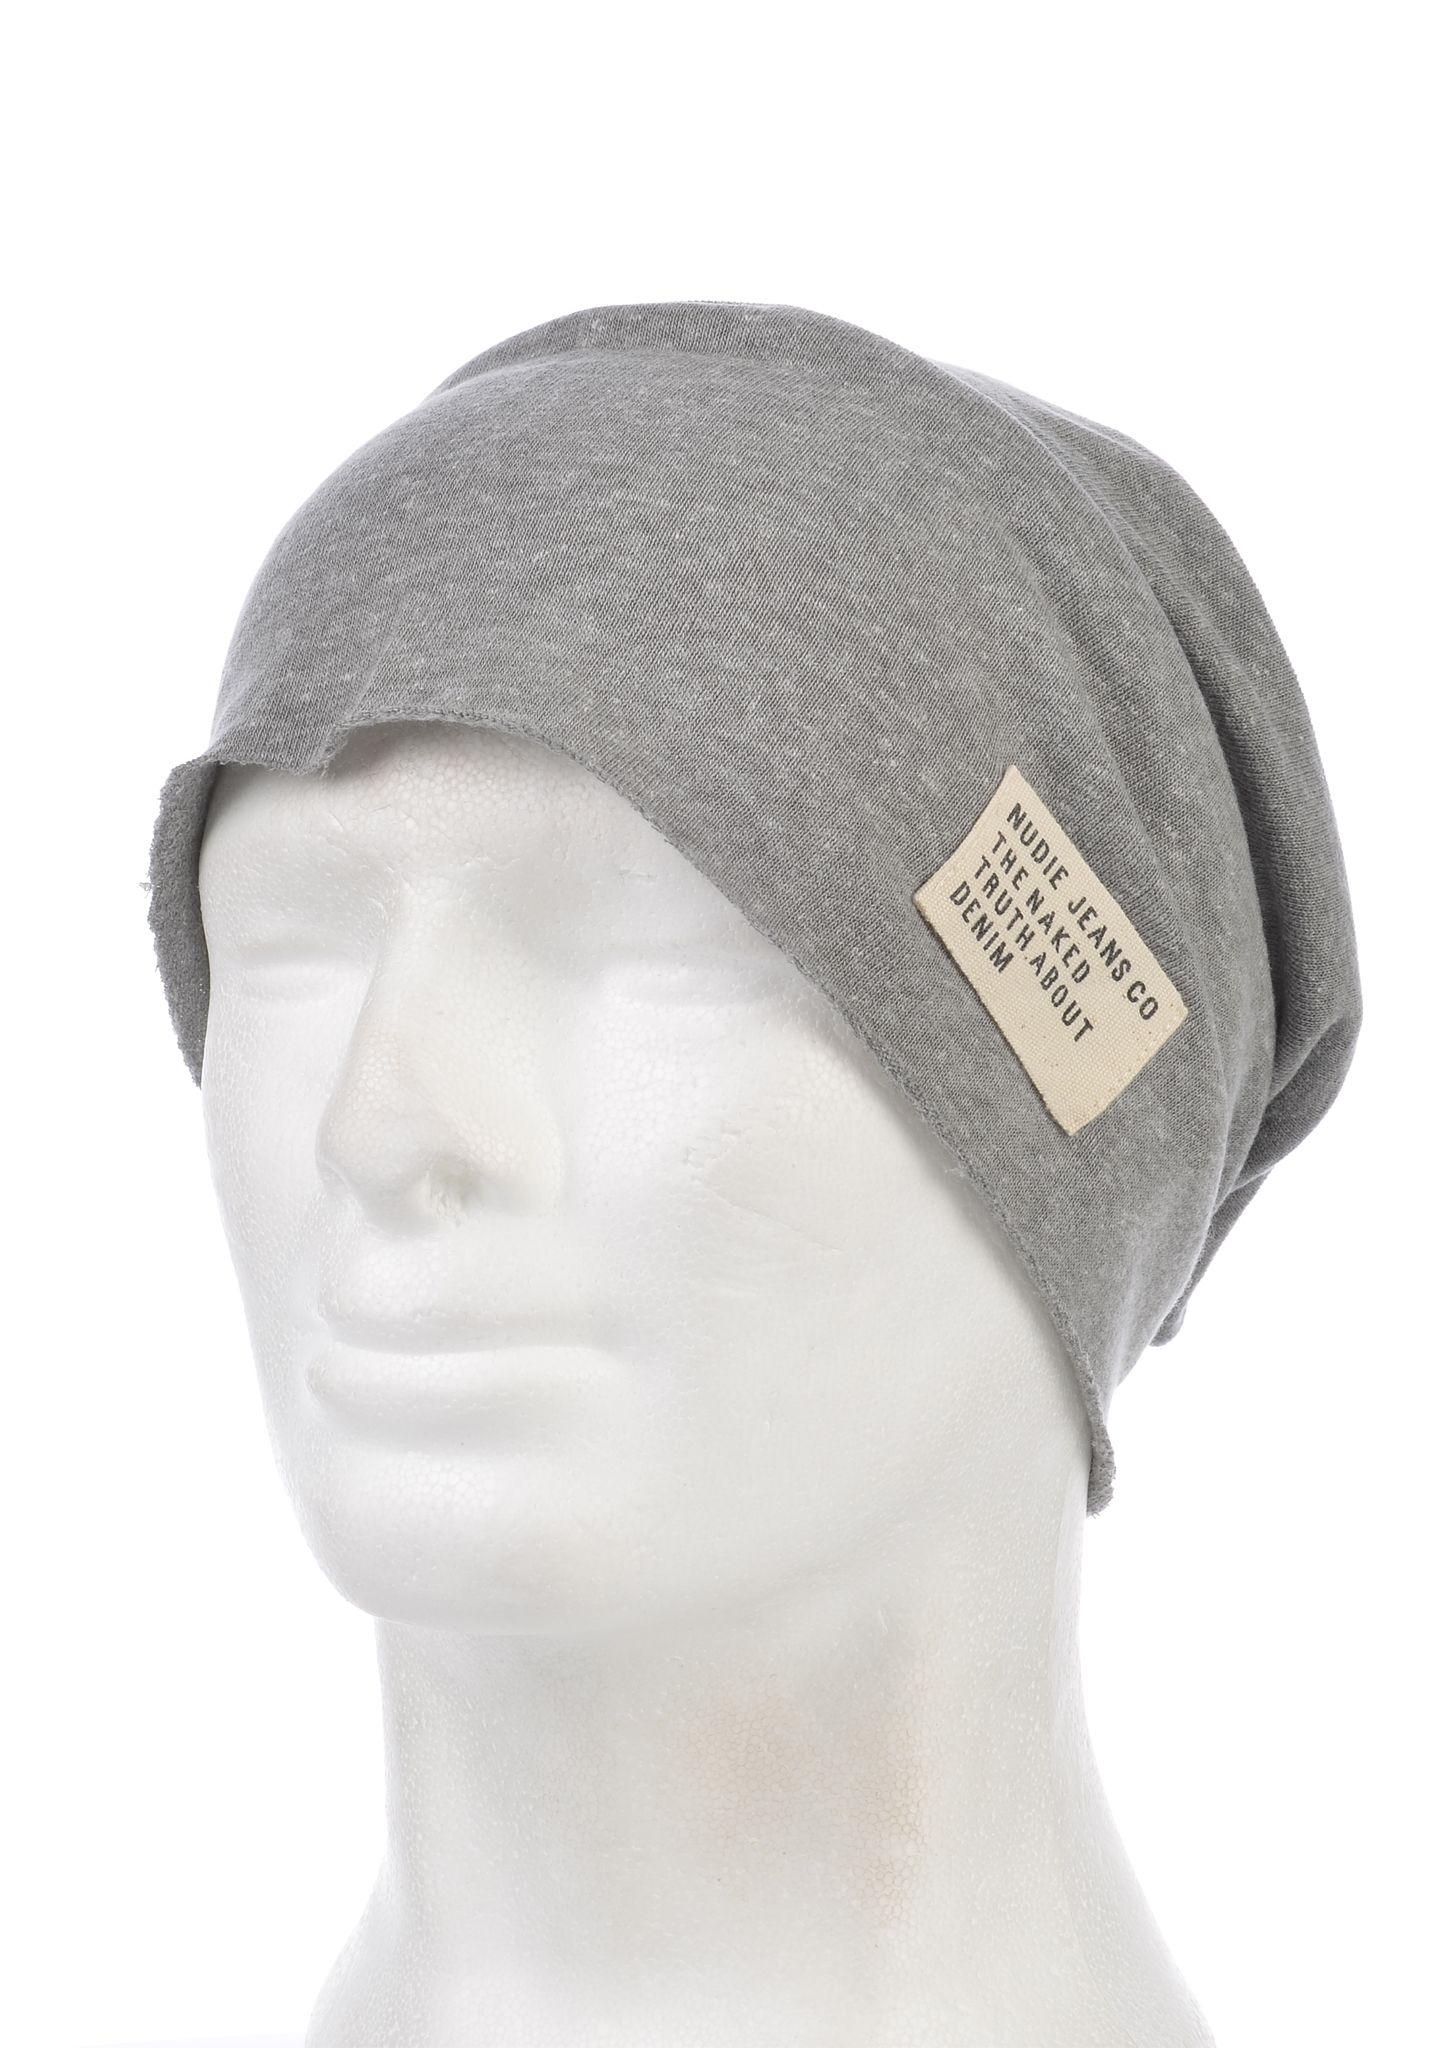 NUDIE JEANS Luigisson - Beanie for Men - Grey - Planet Sports 45a83072d787